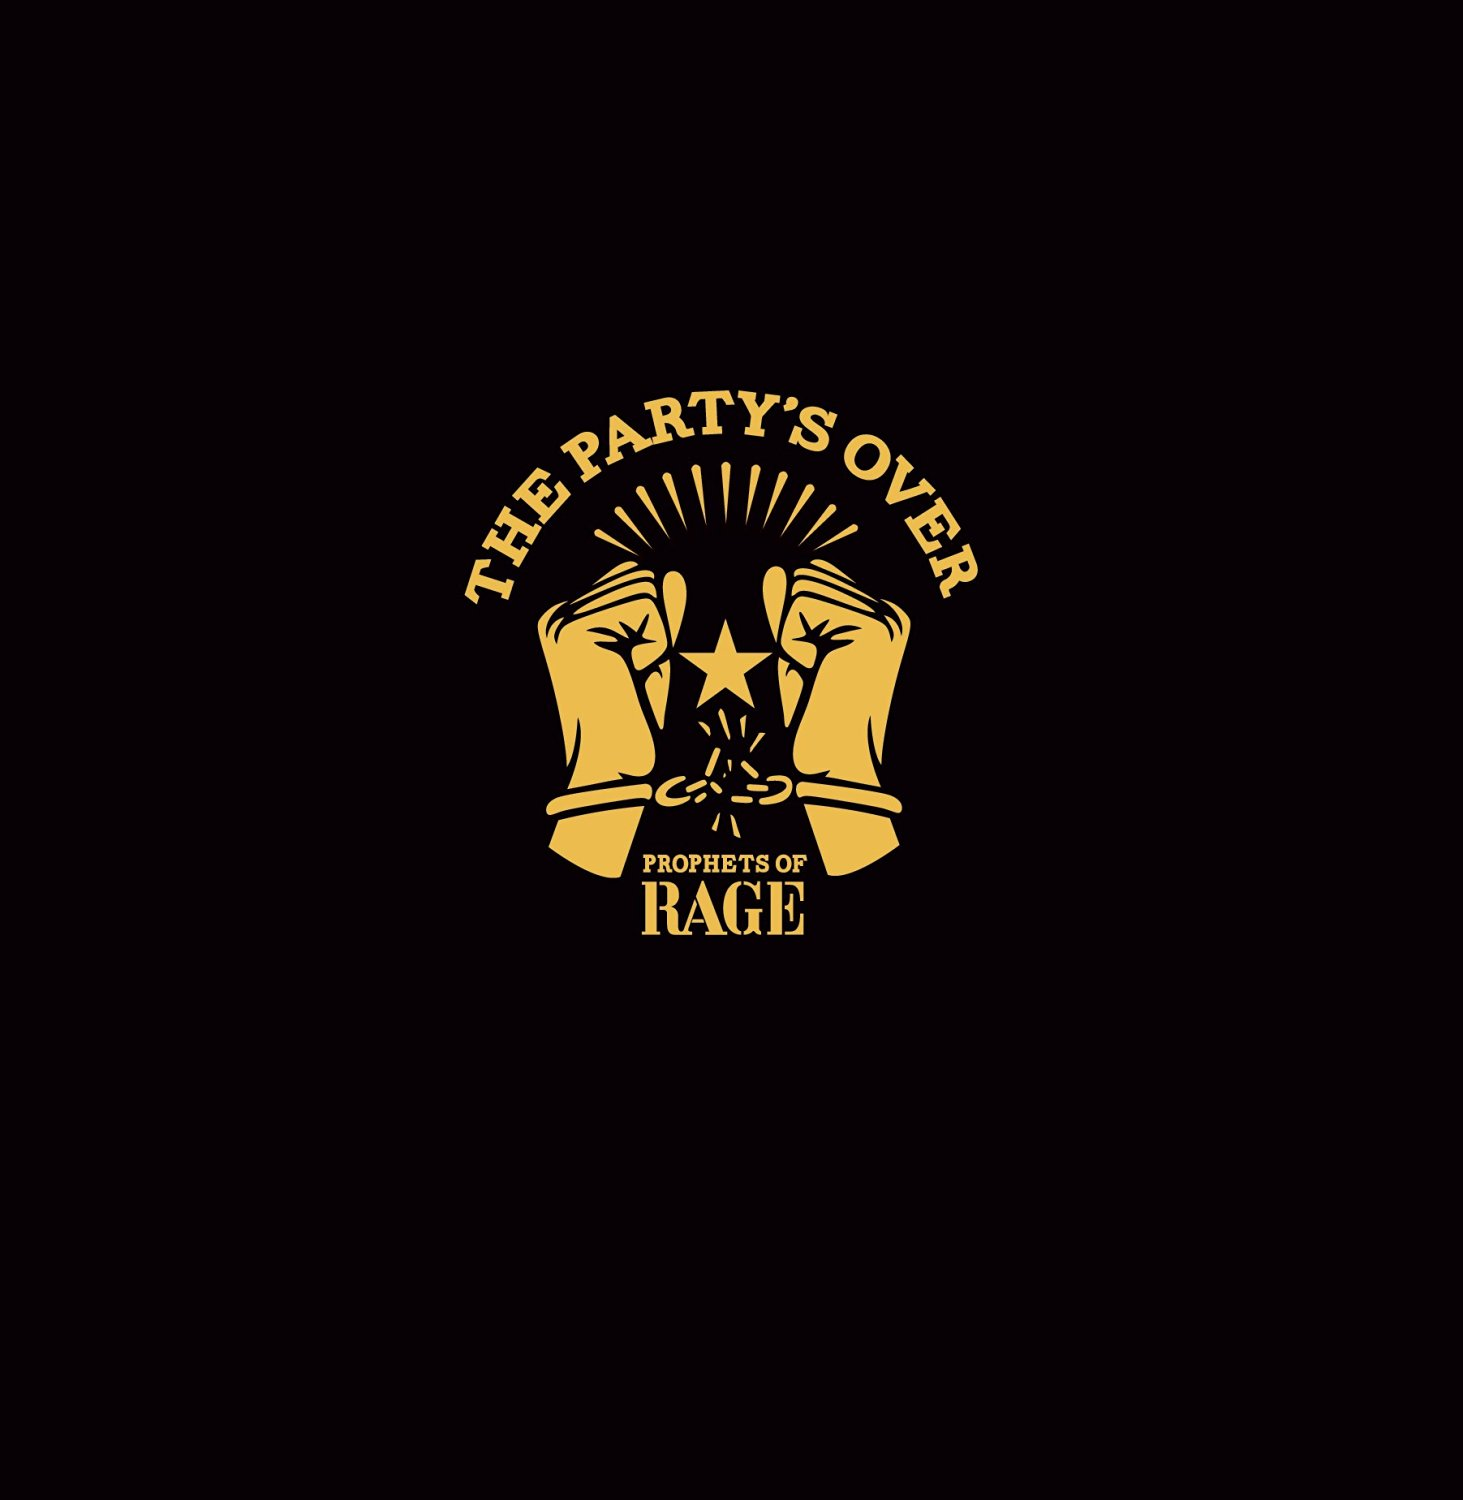 Prophets Of Rage - The Party's Over EP